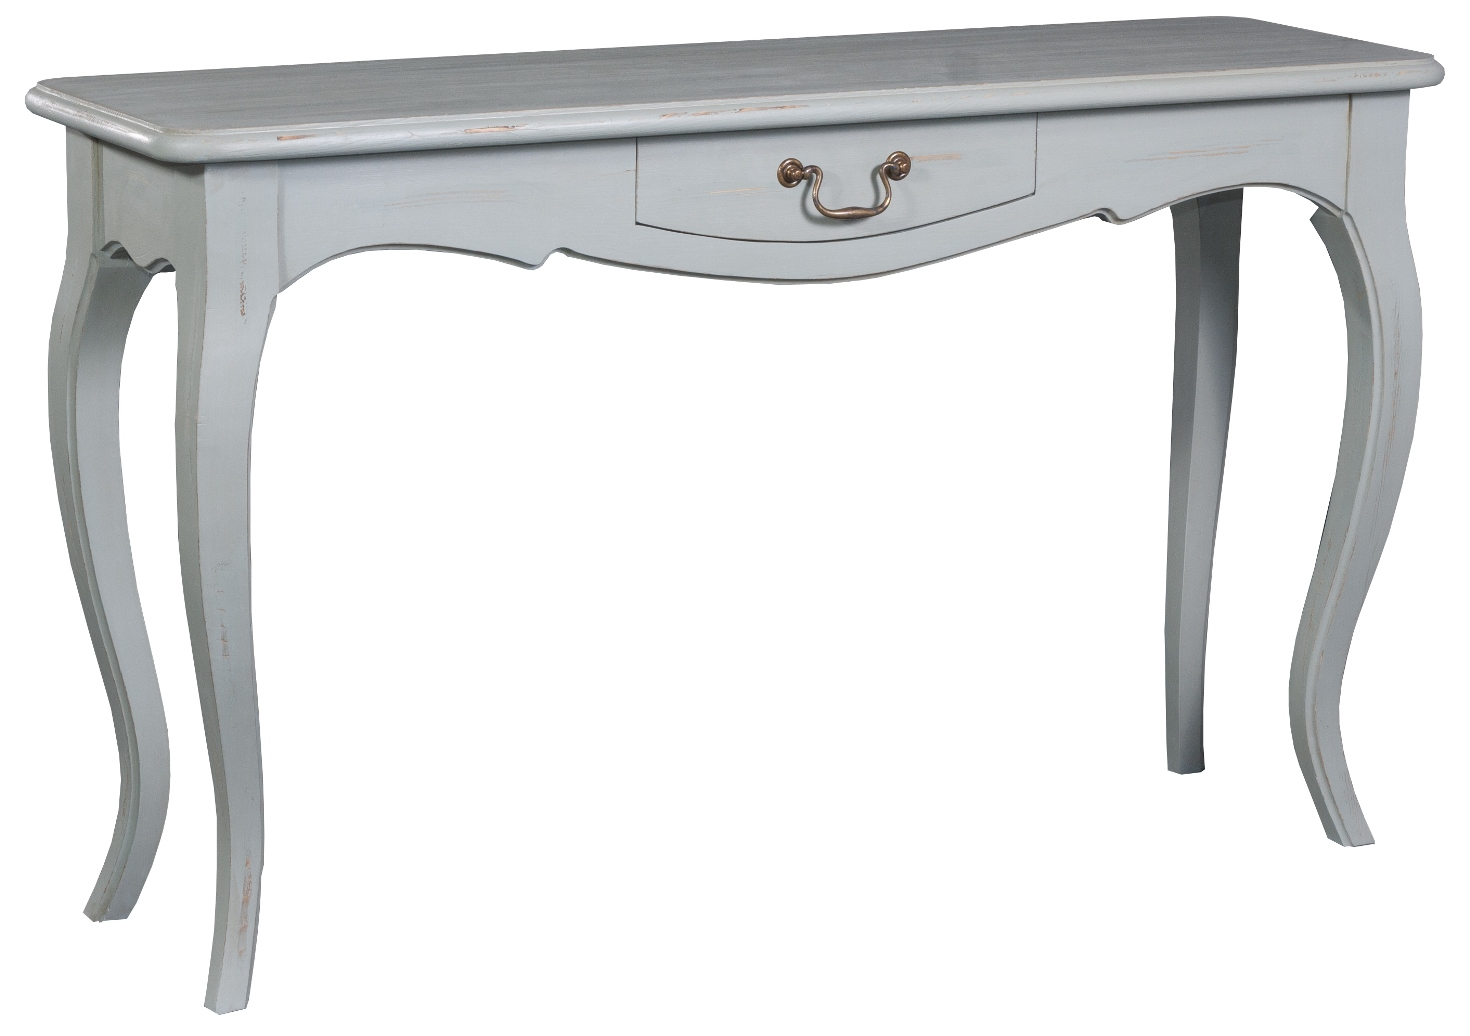 HERITAGE FRENCH LINE DRESSING TABLE/ SIDE TABLE  w 135 x d 40 x h 80 cm  € 581 ( 30% Off - Now € 406.70 )  Product Code: FL-7003  This piece may be orderedin any of the Heritage colours and finishes.